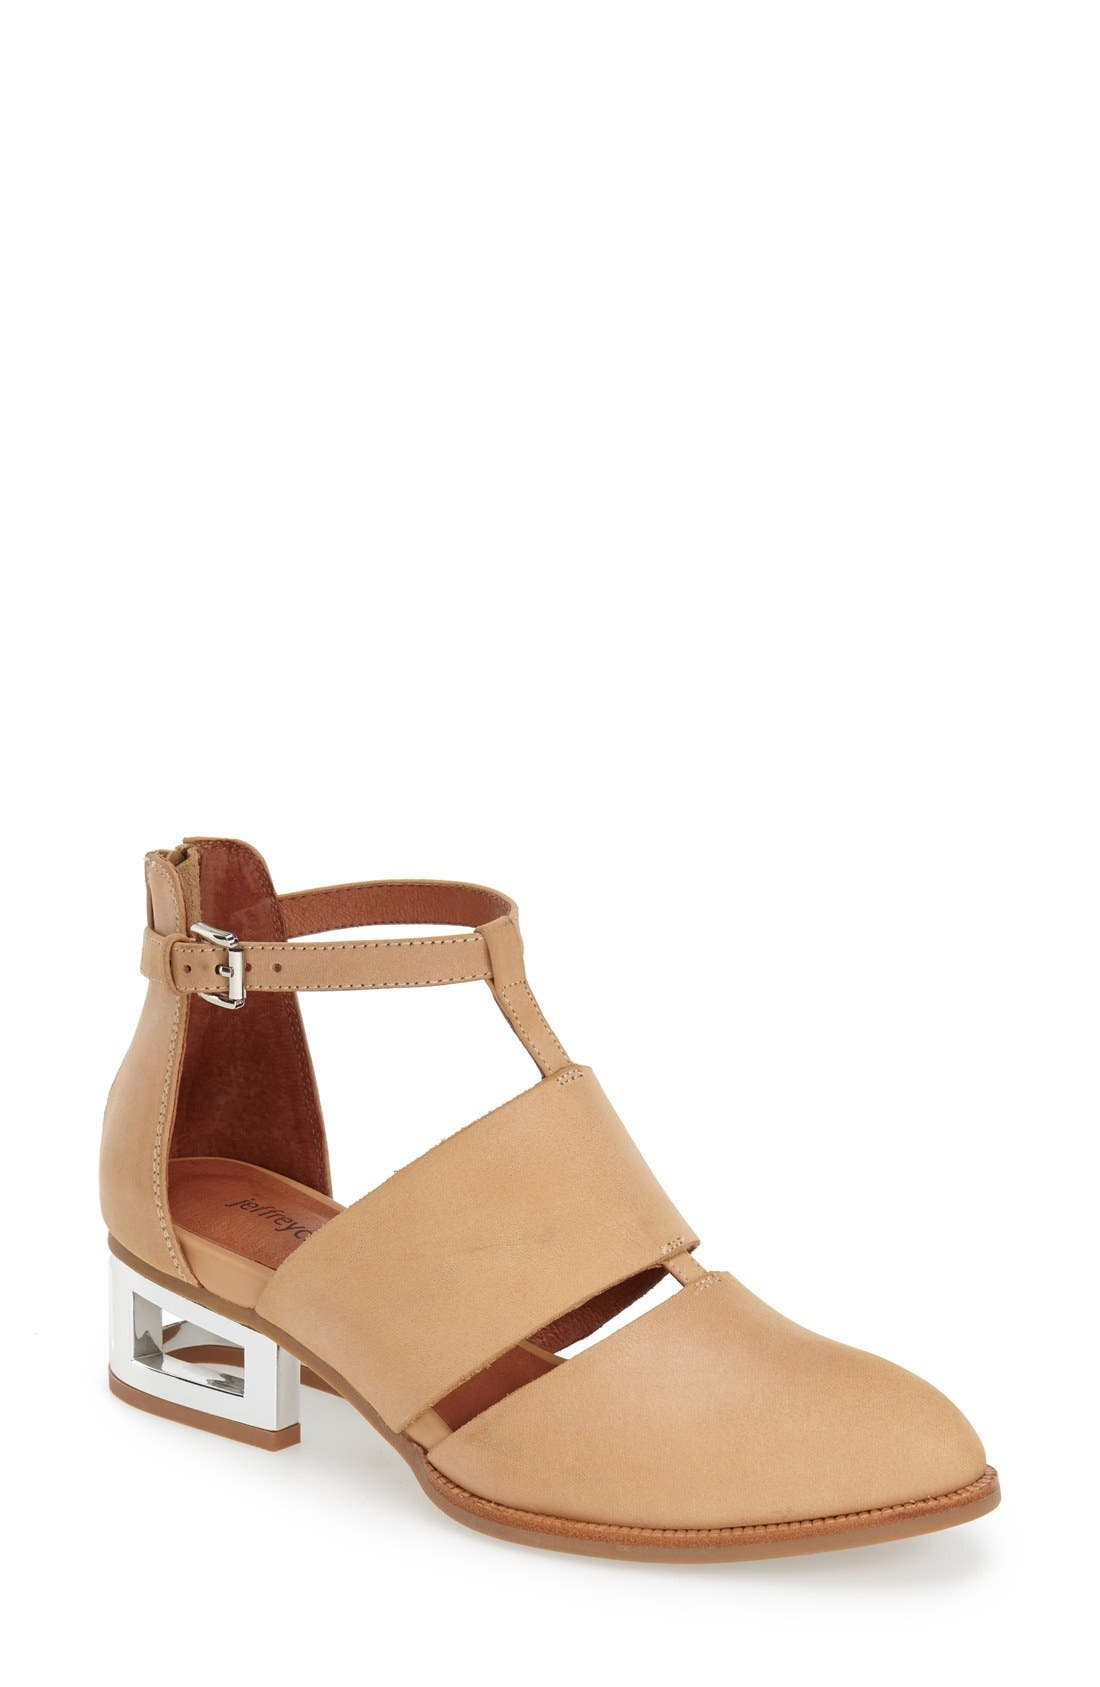 Main Image - Jeffrey Campbell 'Carina' Ankle Boot (Women)